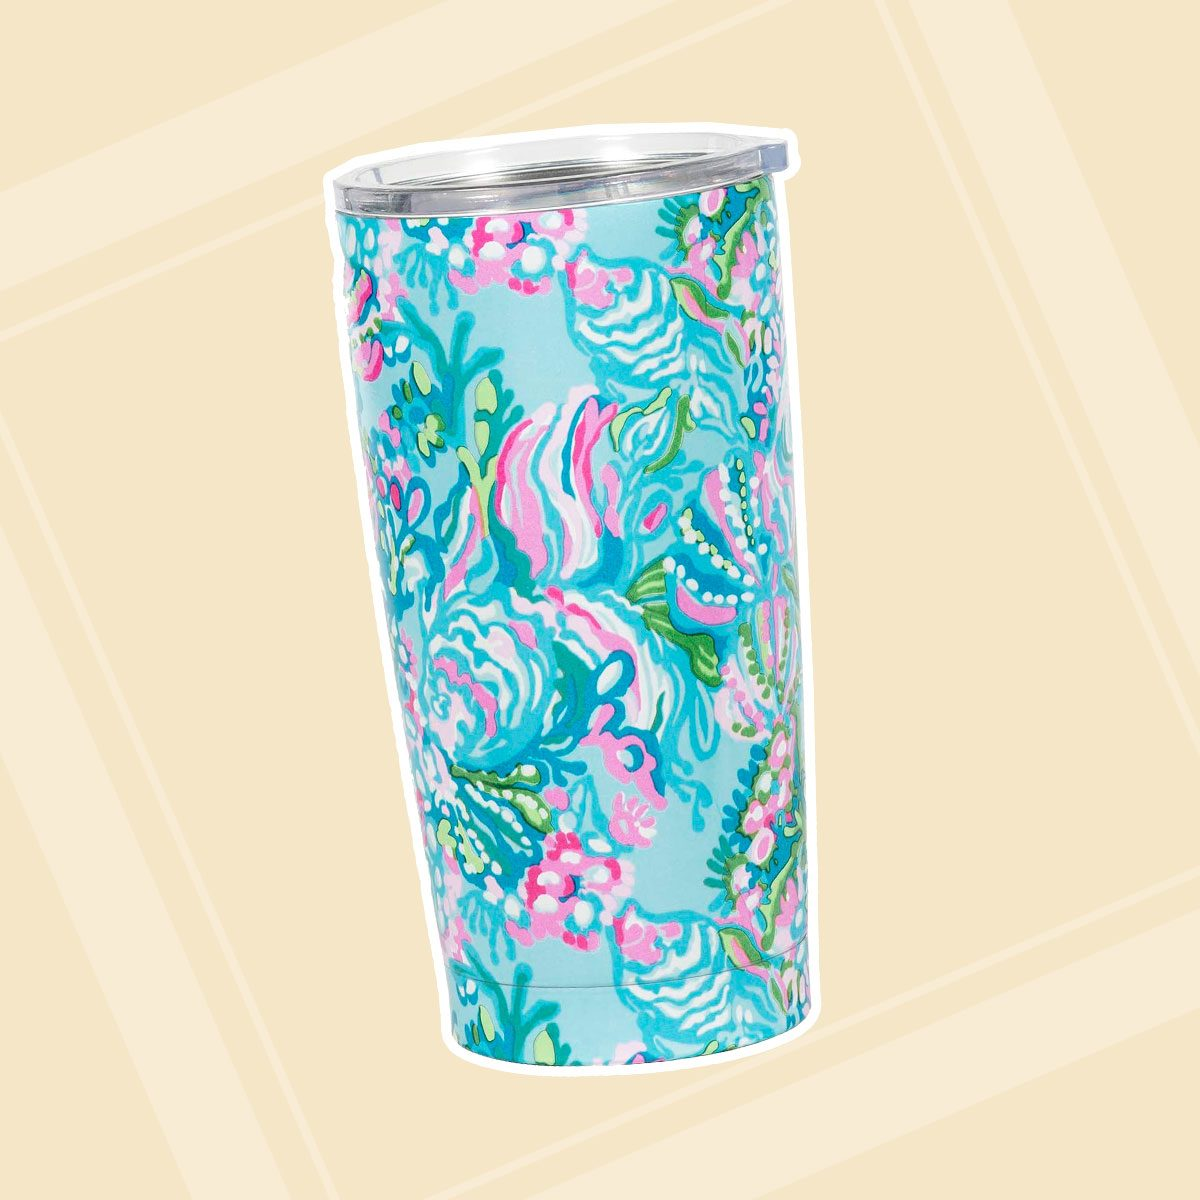 Lilly Pulitzer 20 Ounce Insulated Tumbler with Lid, Blue Stainless Steel Travel Cup, Aqua La Vista